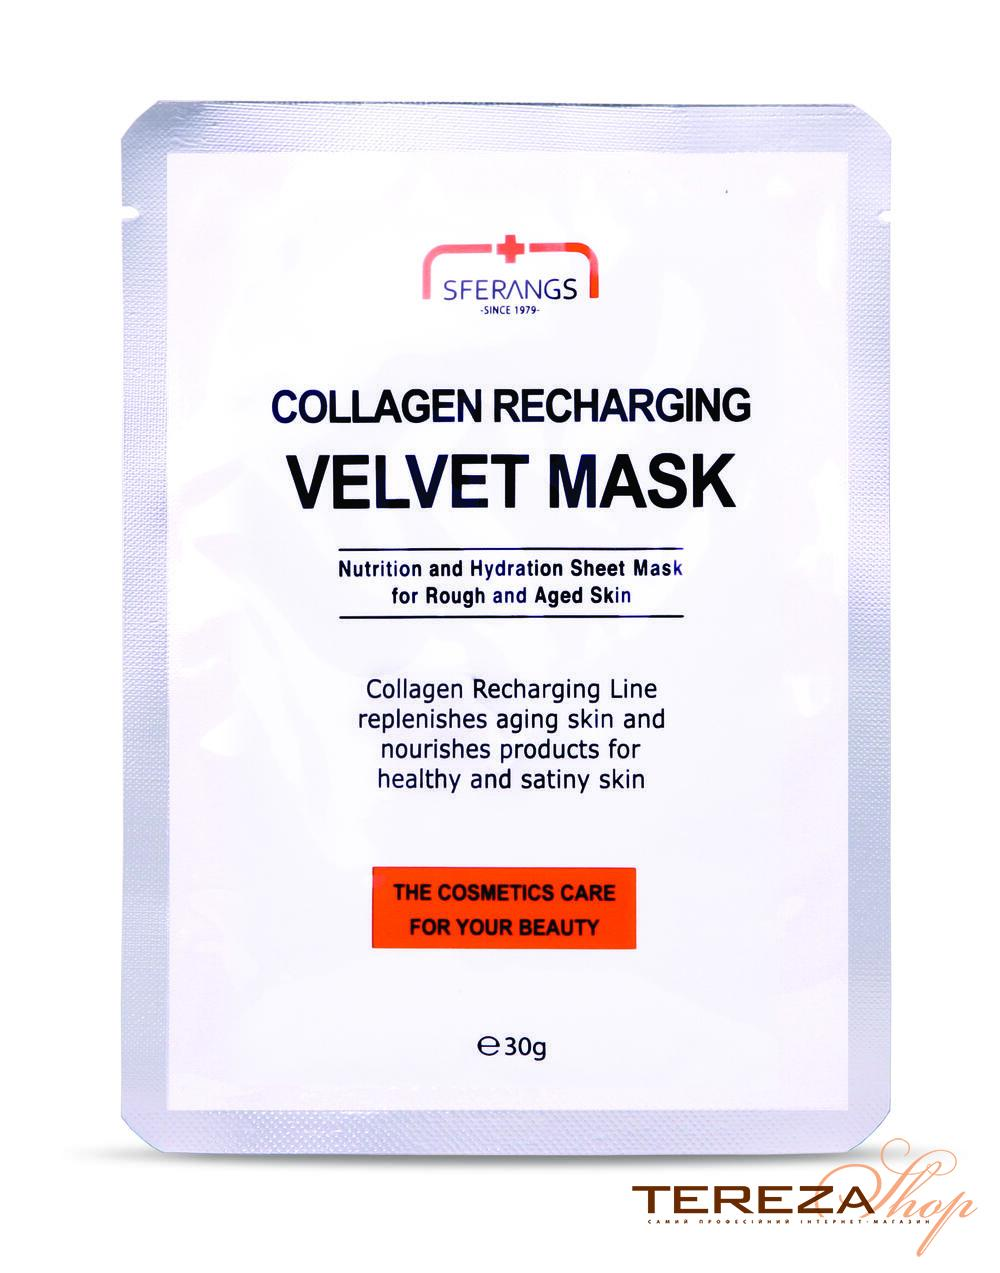 COLLAGEN RECHARGING VELVET MASK 30 ml * 5 SFERANGS | Tereza Shop